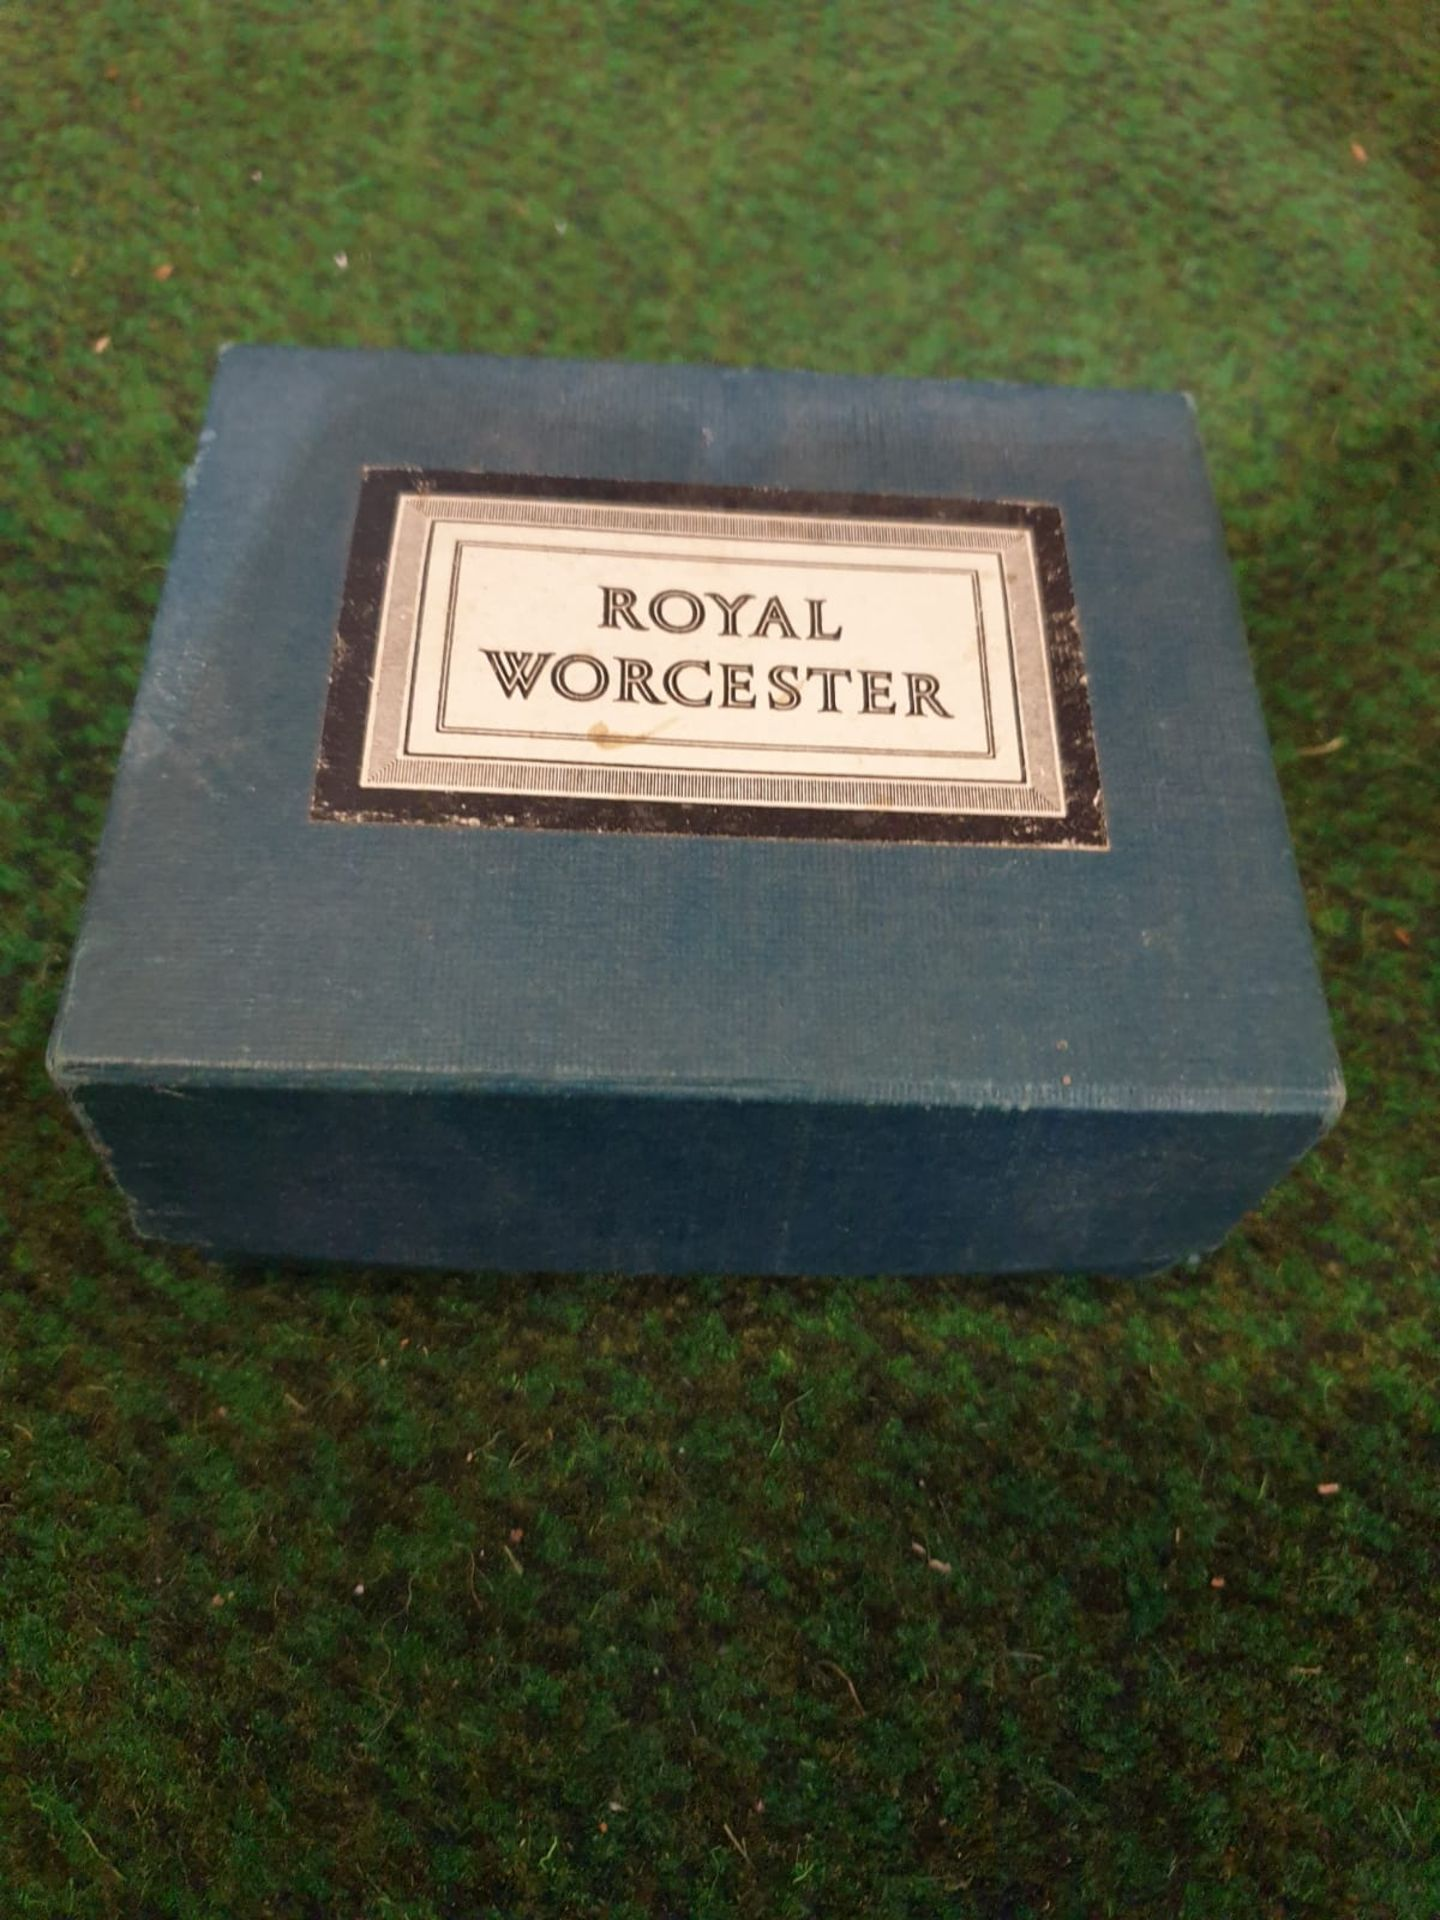 Royal Worcester Egg Coddlers 2 x boxed pairs of porcelain decorated egg coddlers - Image 4 of 4